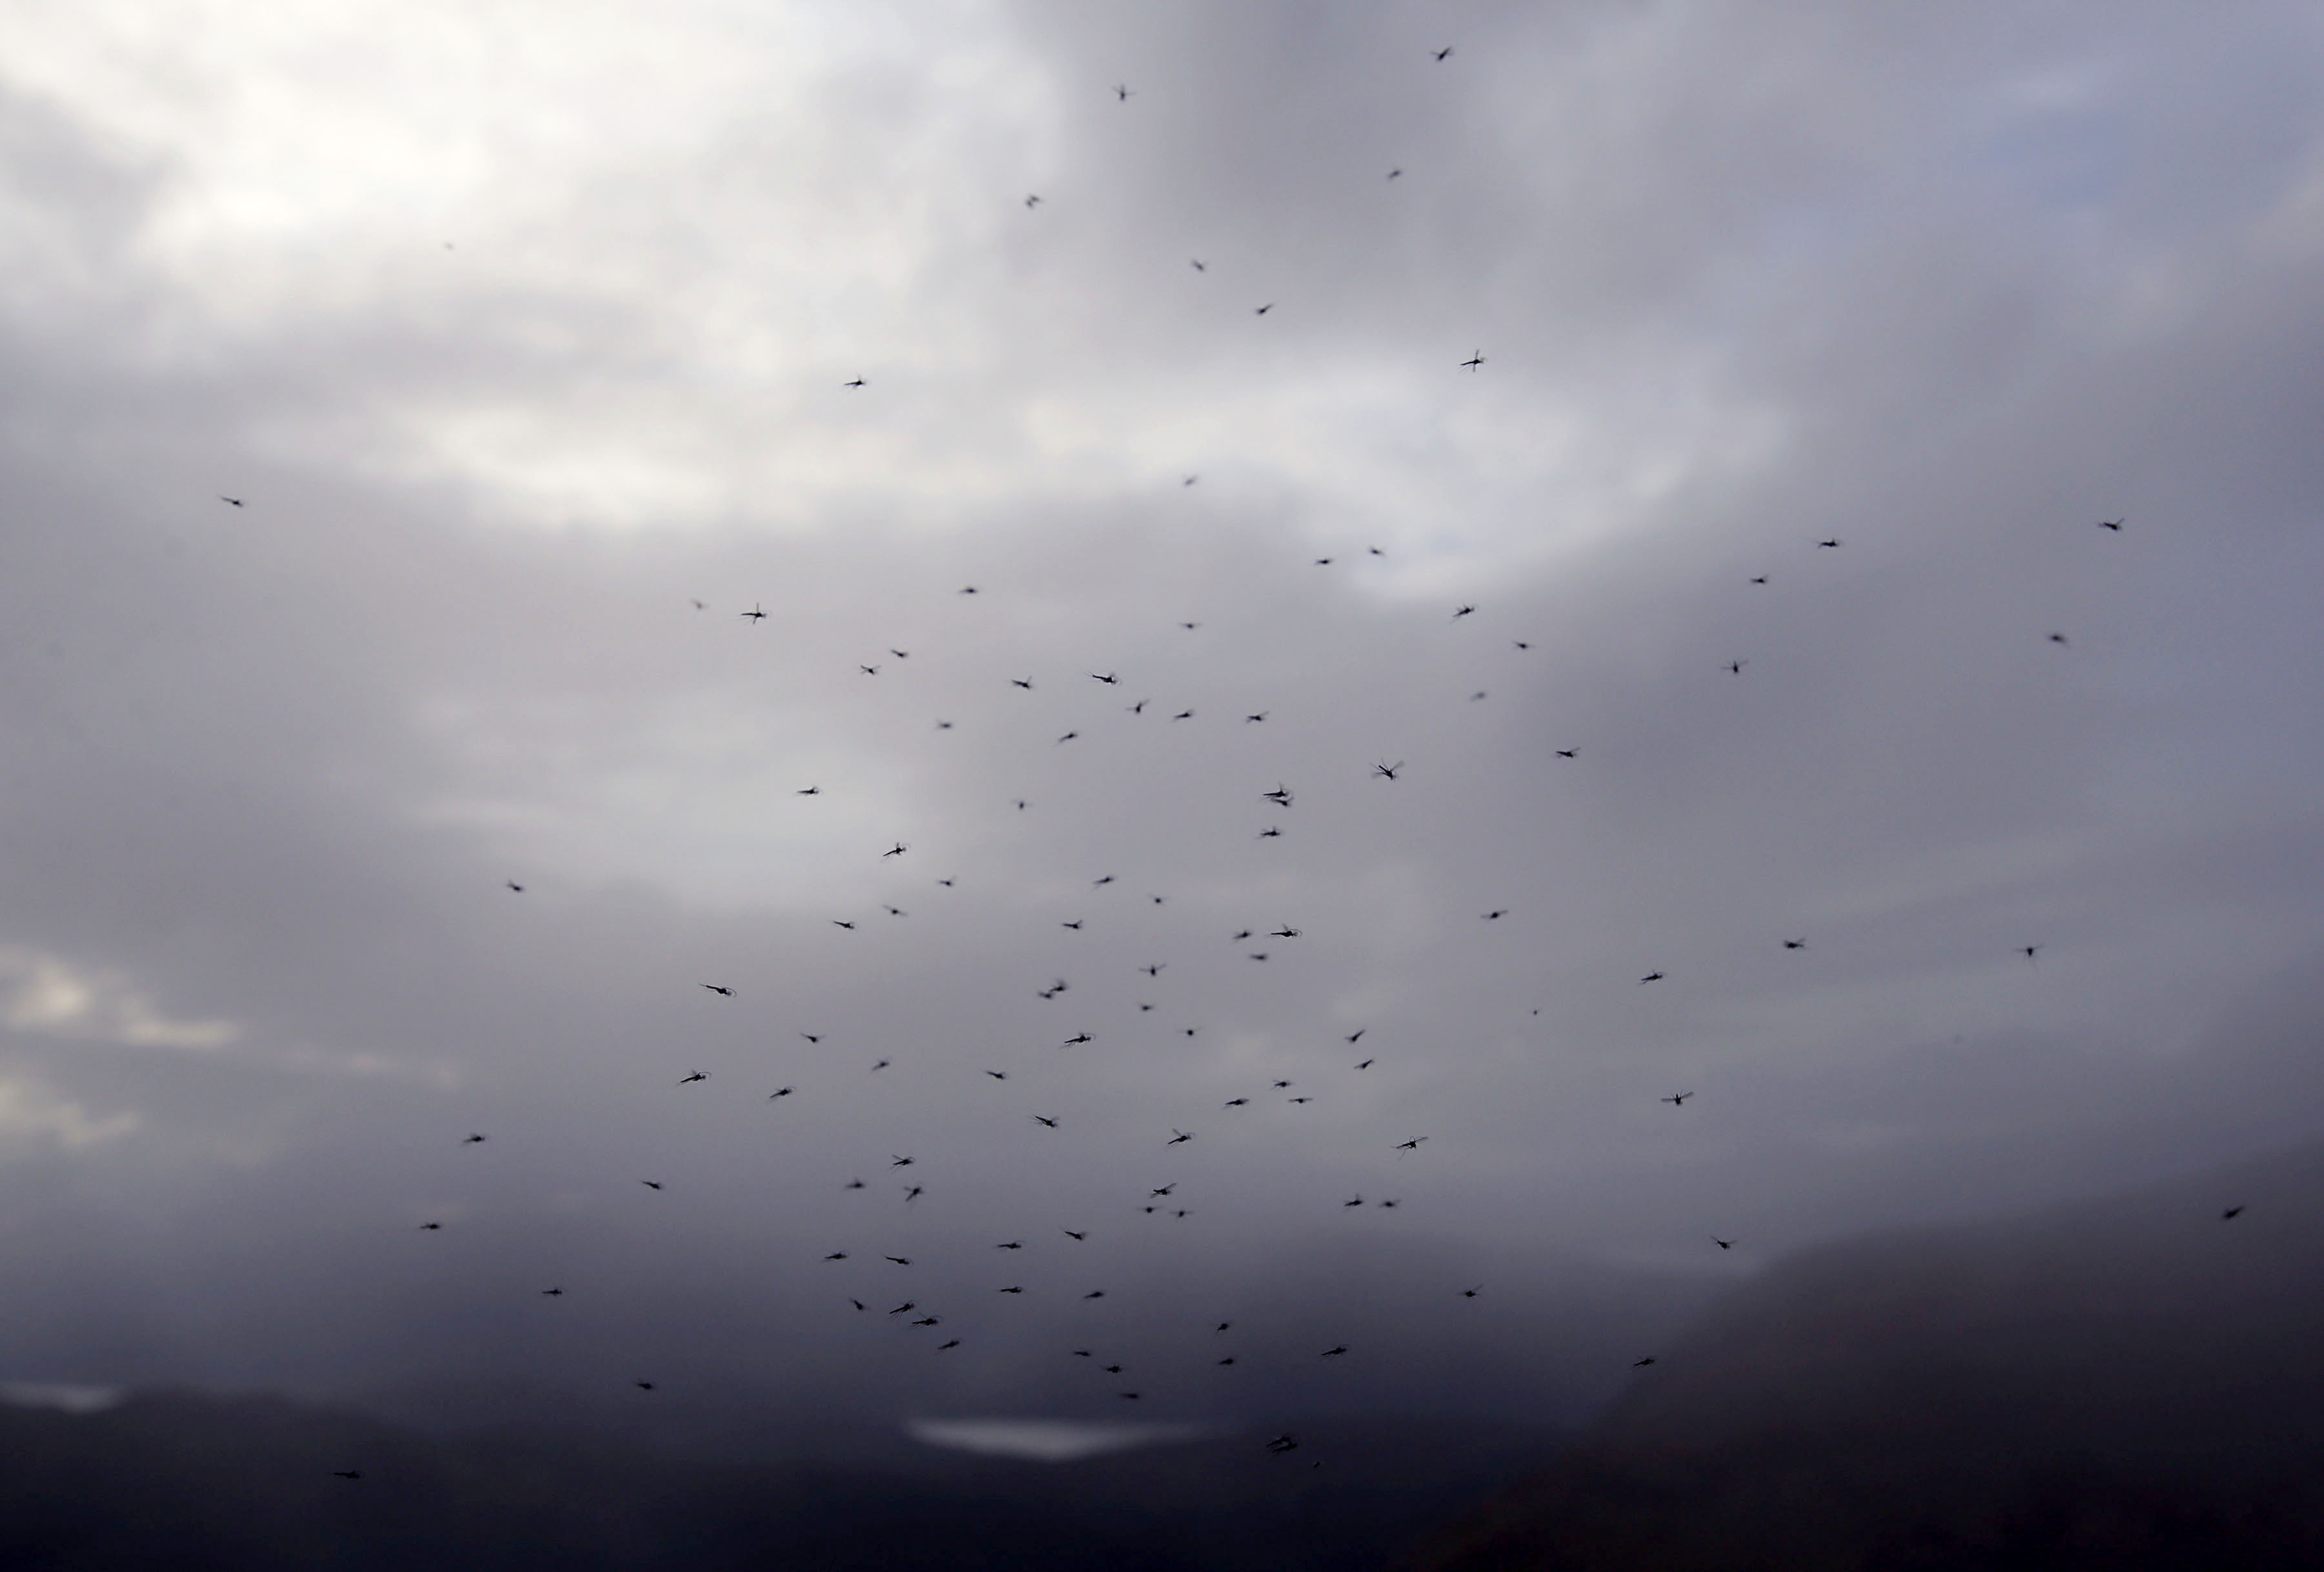 Midges hovering around a path on Ben Nevis.